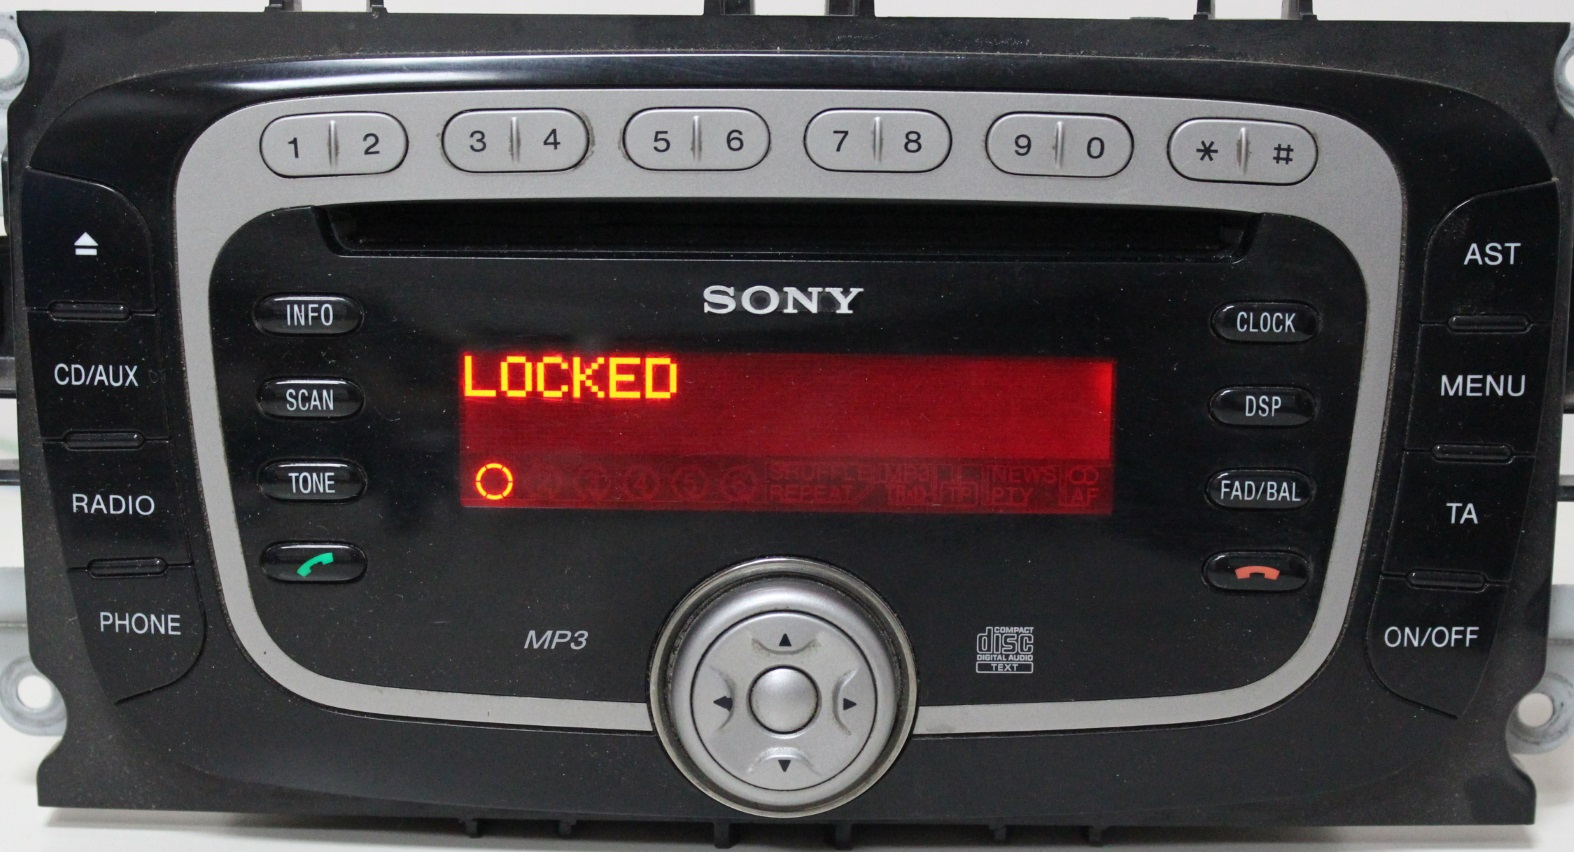 Ford_sony_locked